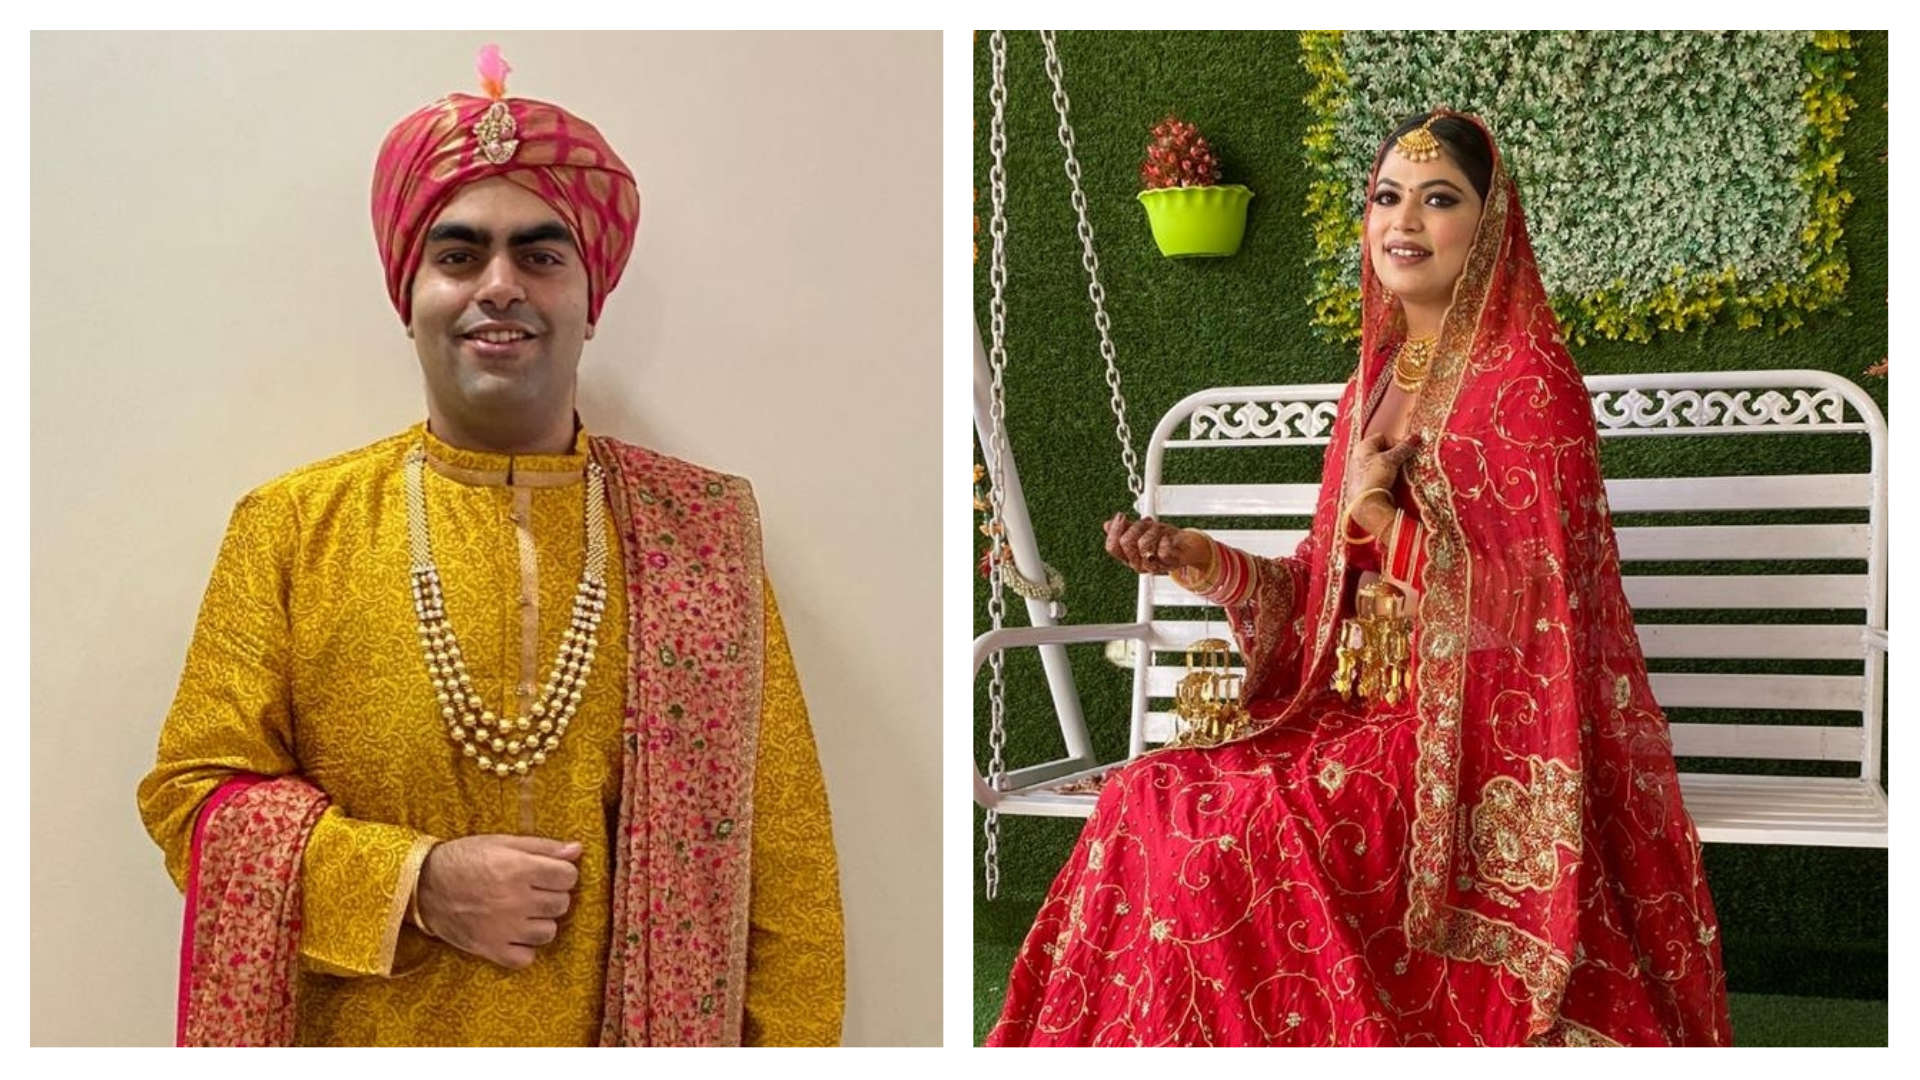 Wedding From Home On Zoom Call In India